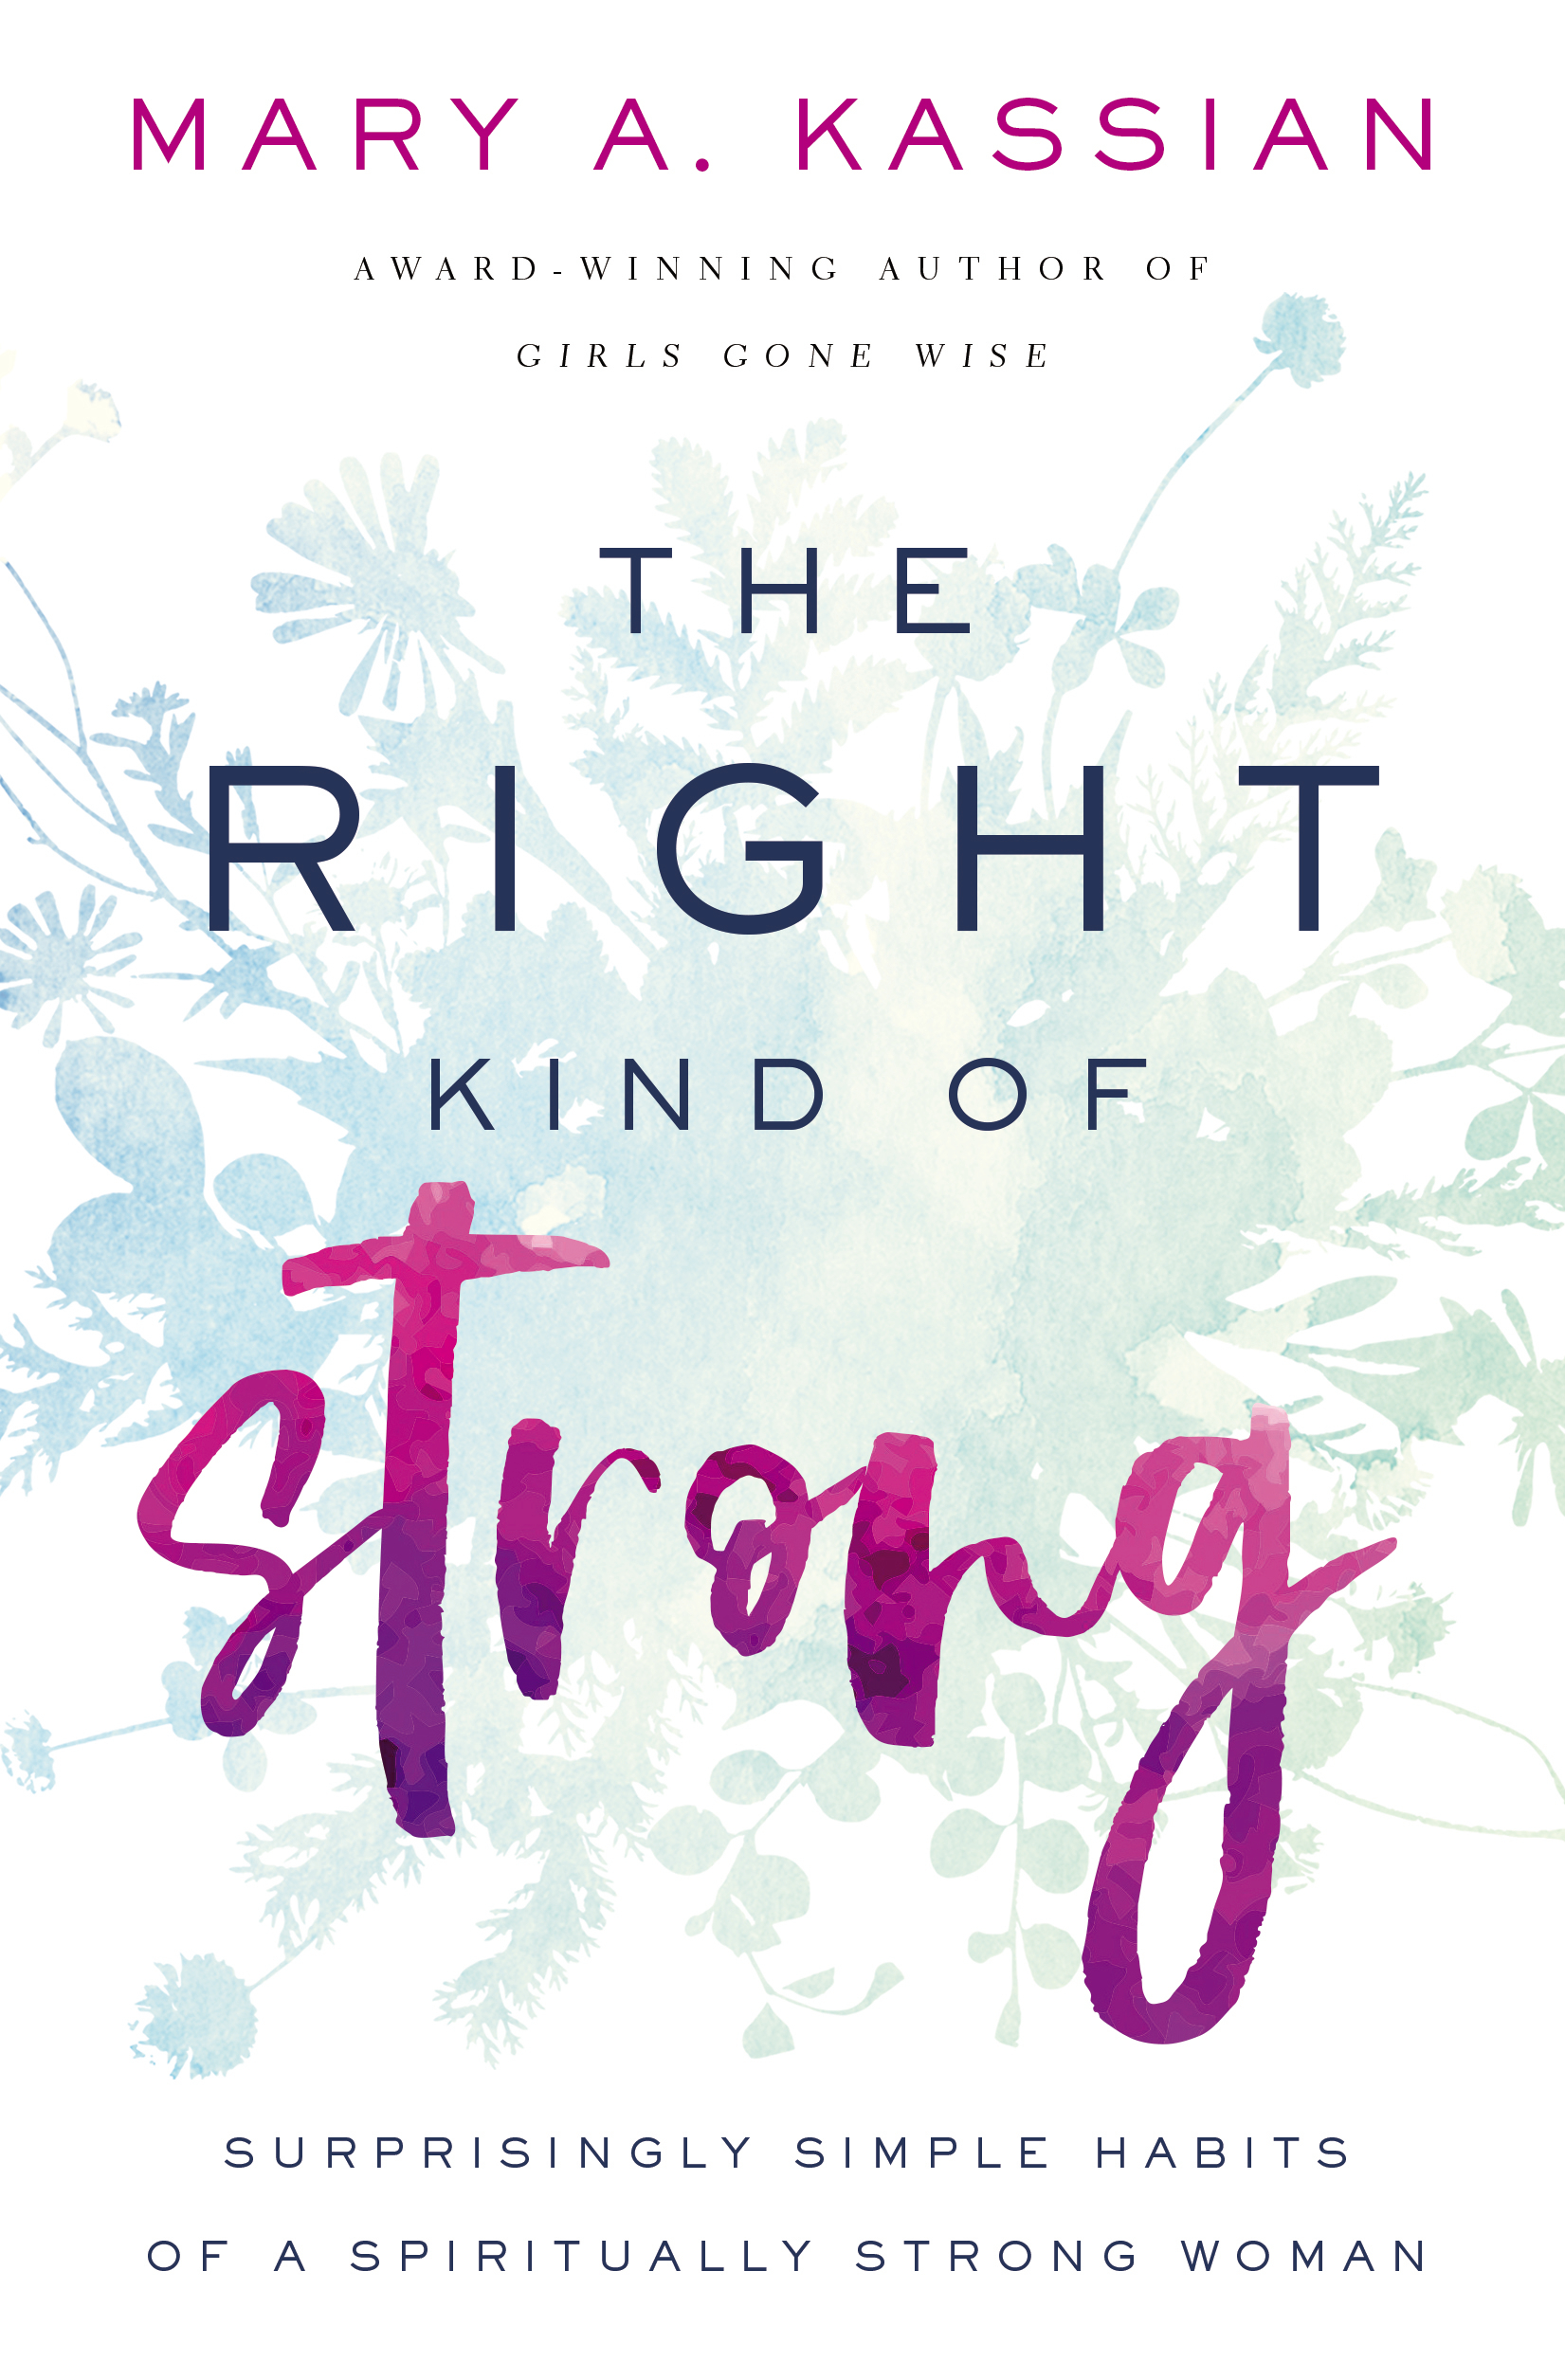 TheRightKindofStrong_FINALcover